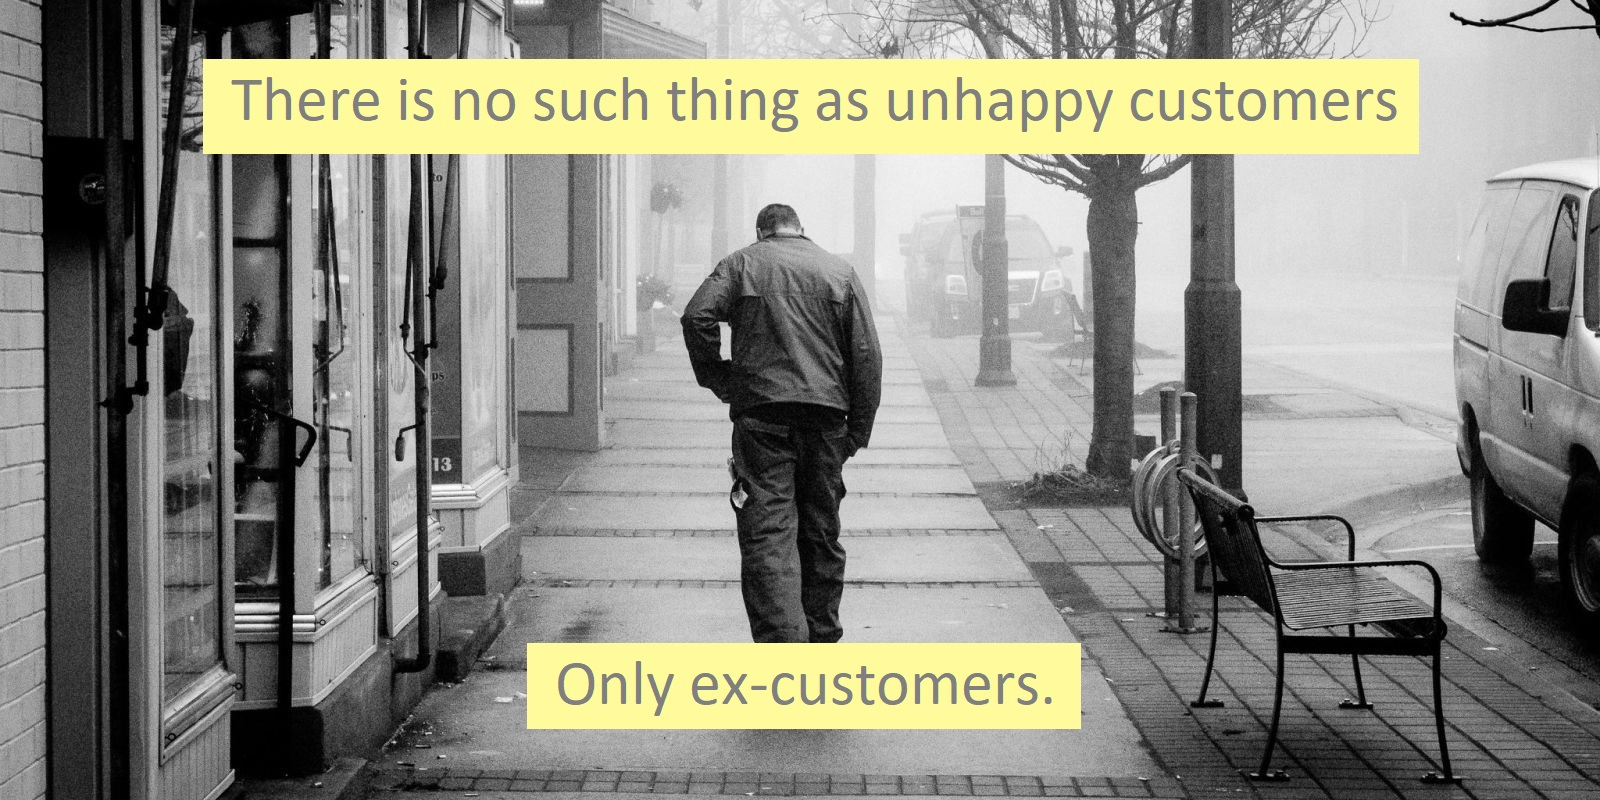 There is no such thing as unhappy customers -- only ex-customers.